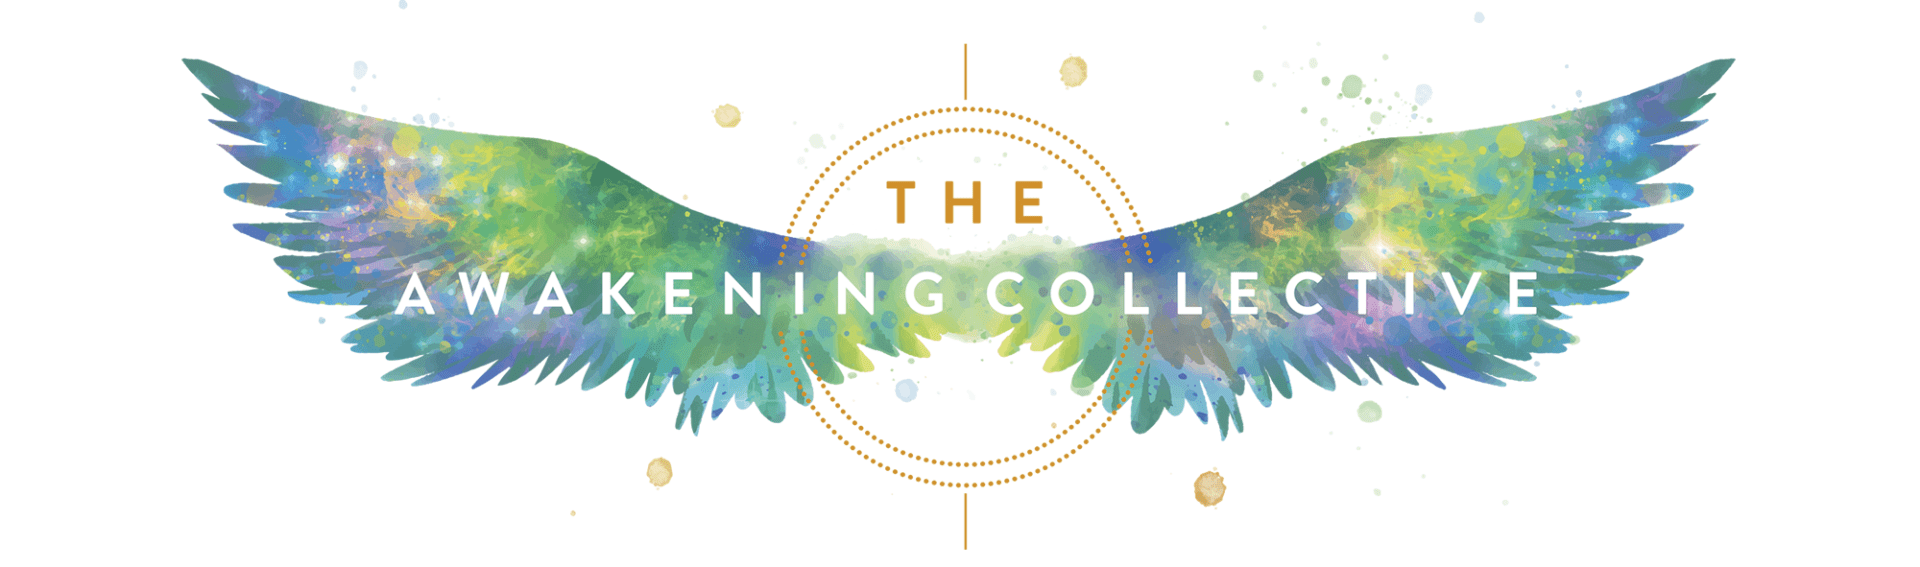 The Awakening Collective Banner